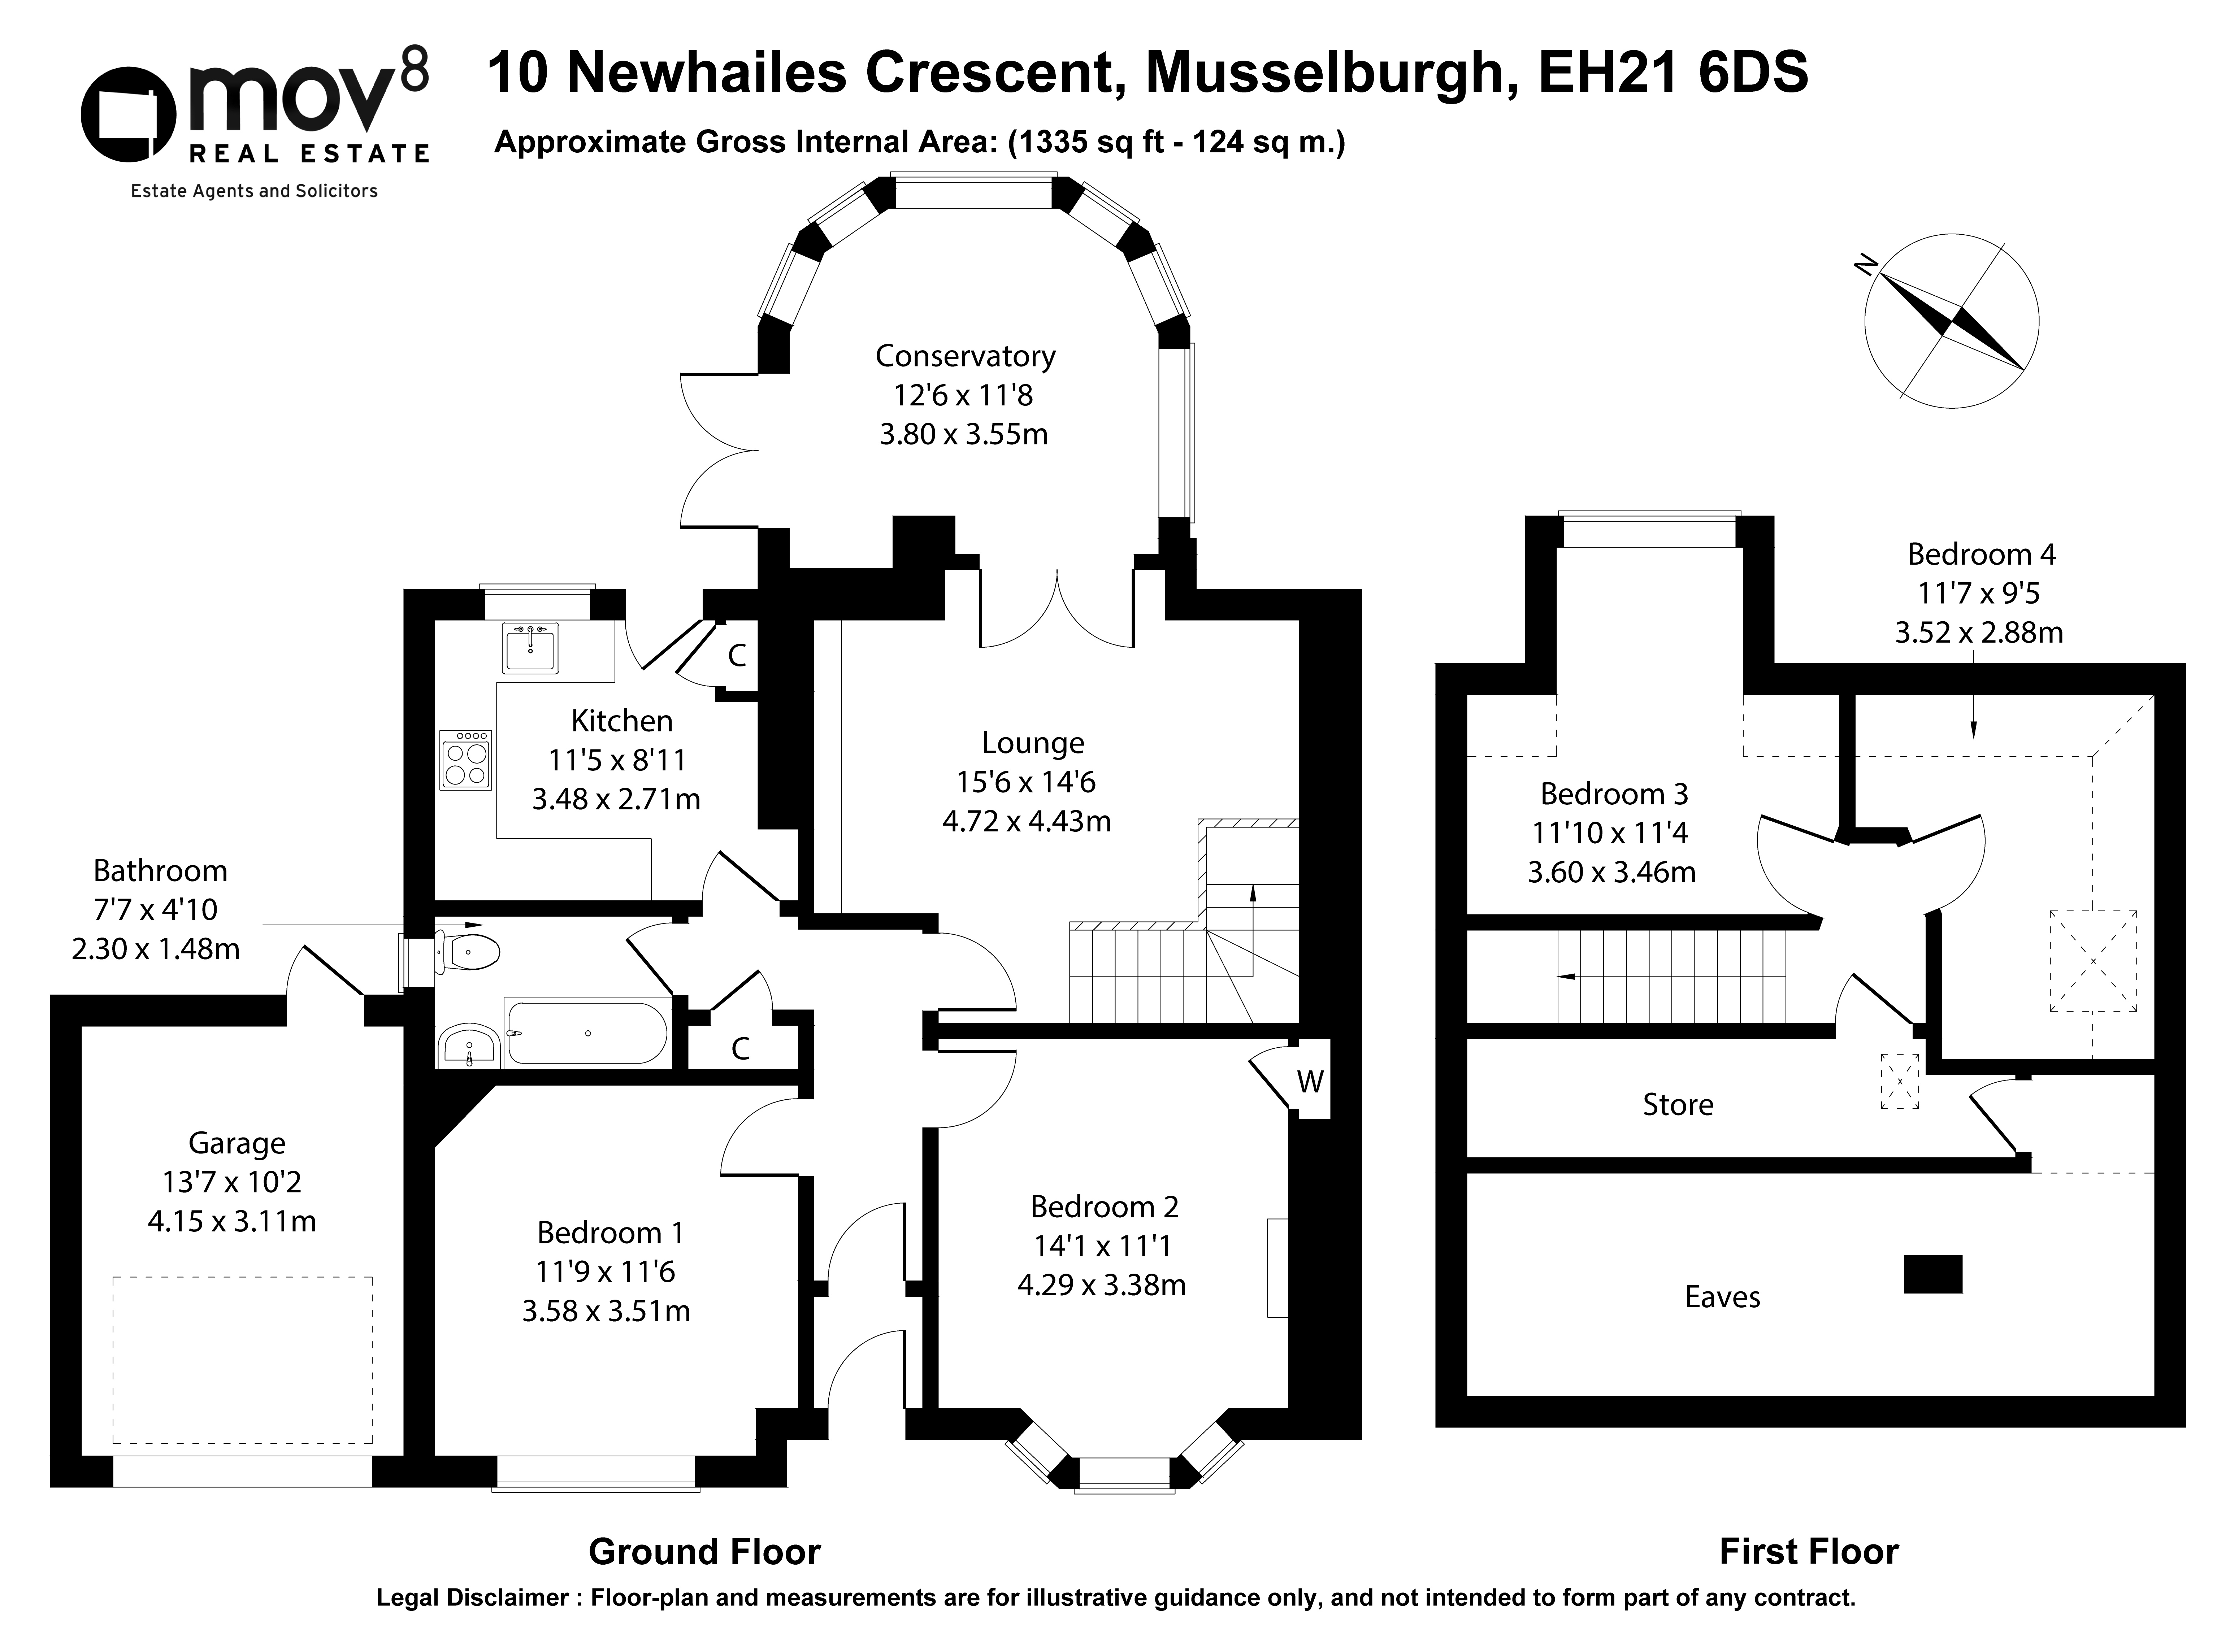 Floorplan 1 of 10 Newhailes Crescent, Musselburgh, East Lothian, EH21 6DS